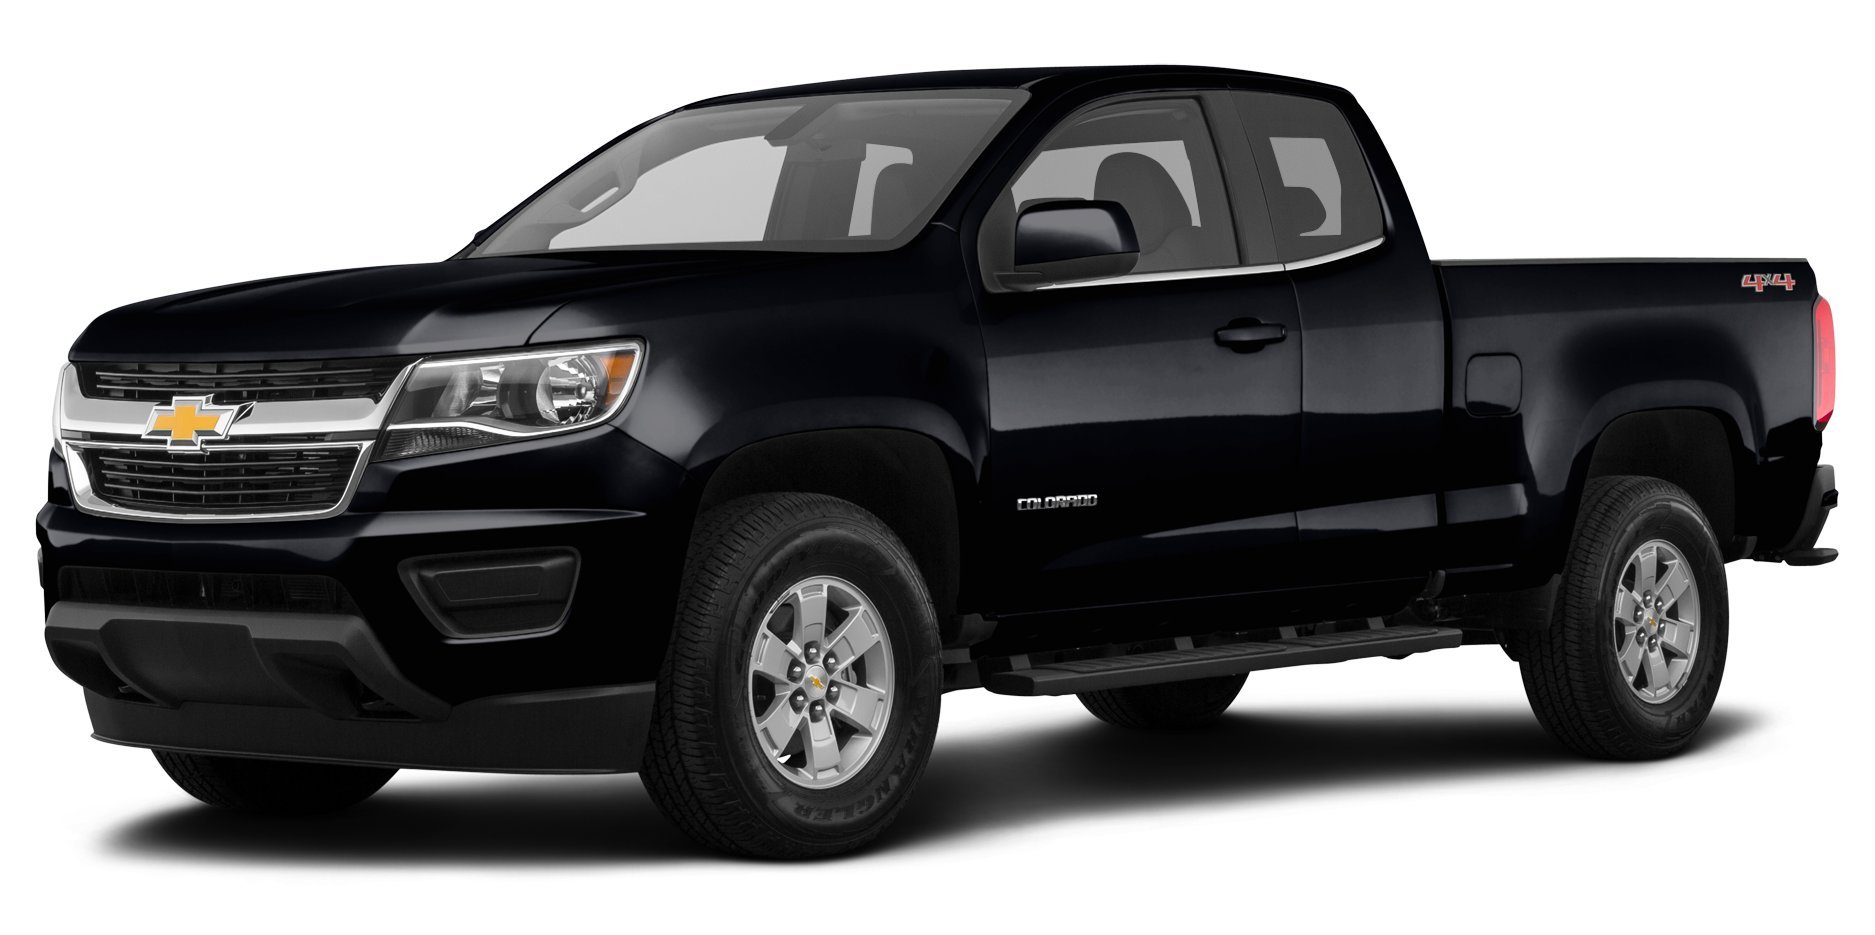 Toyota Tacoma 2015-2018 Service Manual: Pre-collision System Warning Buzzer